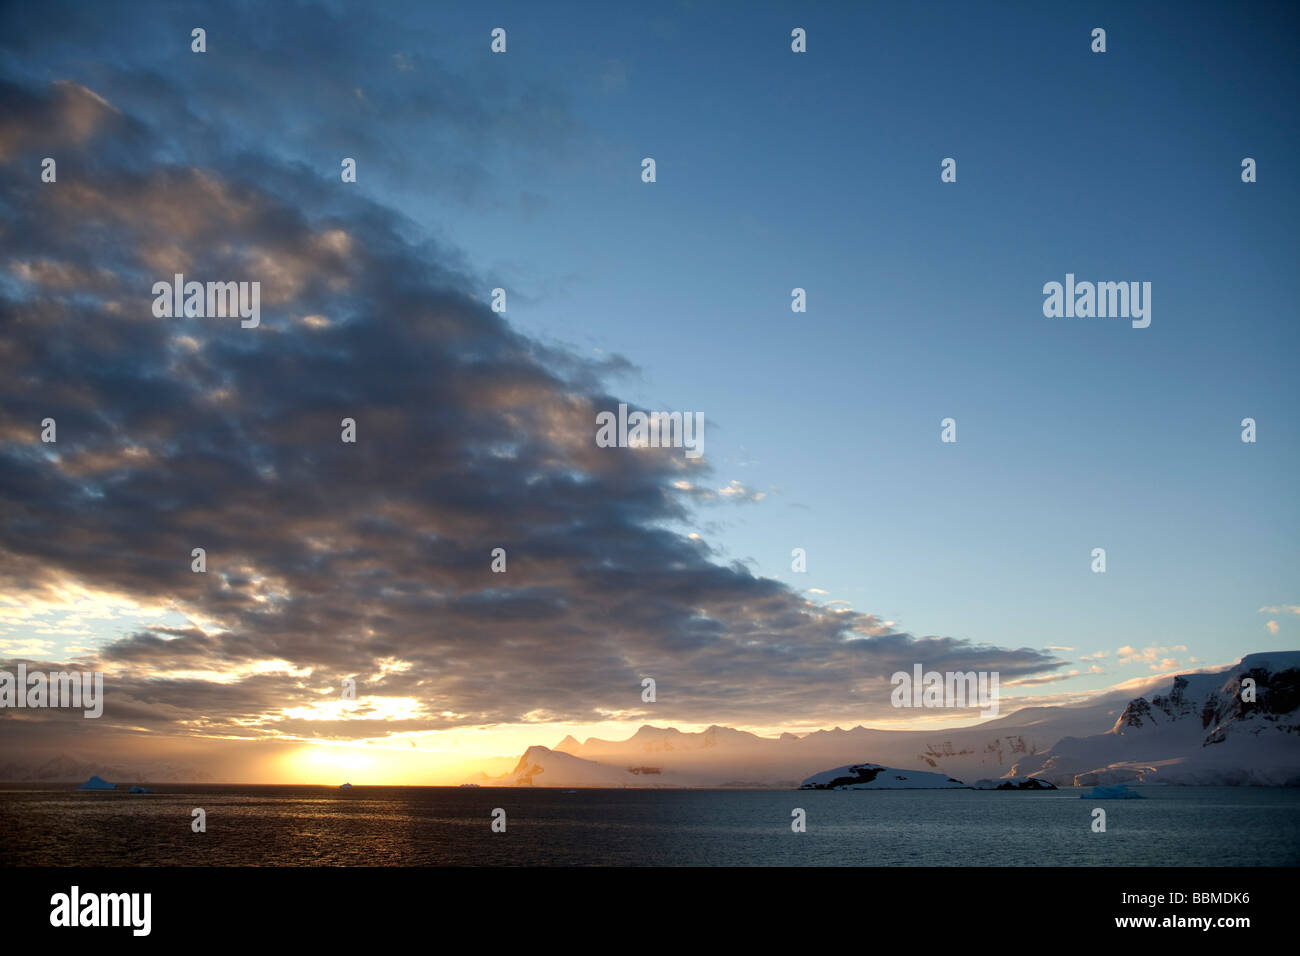 Antarctica, Peninsula. Sunset over the Antarctic Peninsula, clouds of a cold front being occluded by high pressure. - Stock Image